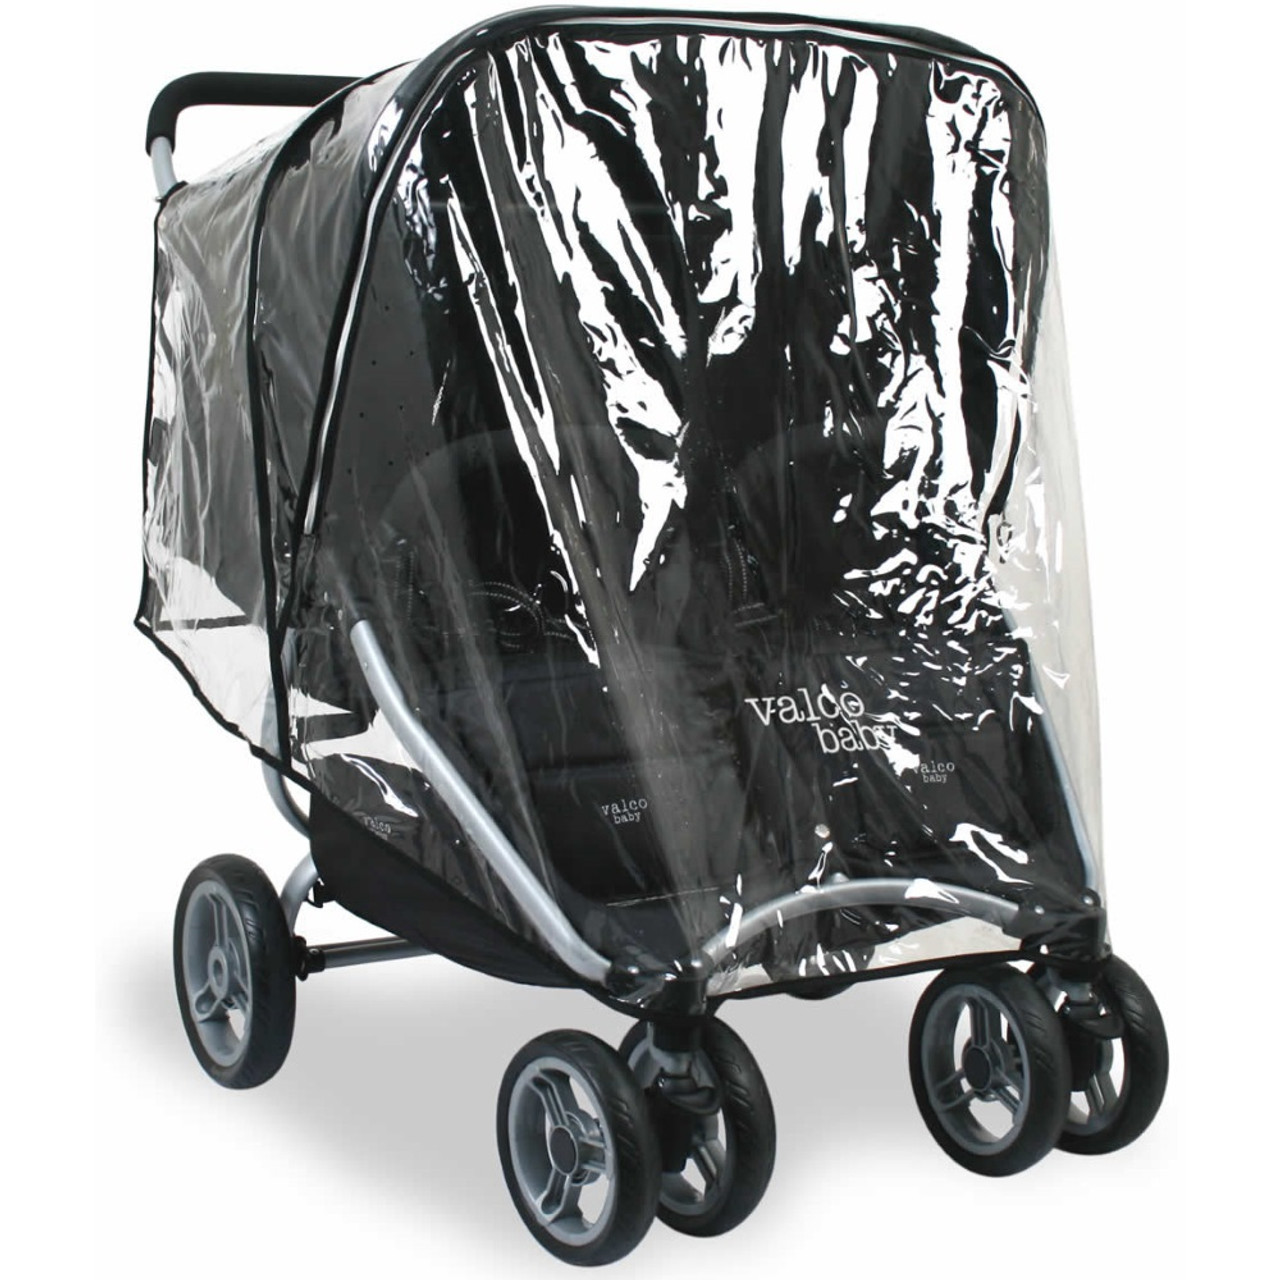 Valco Snap Duo Wind & Rain Cover for Two Hoods